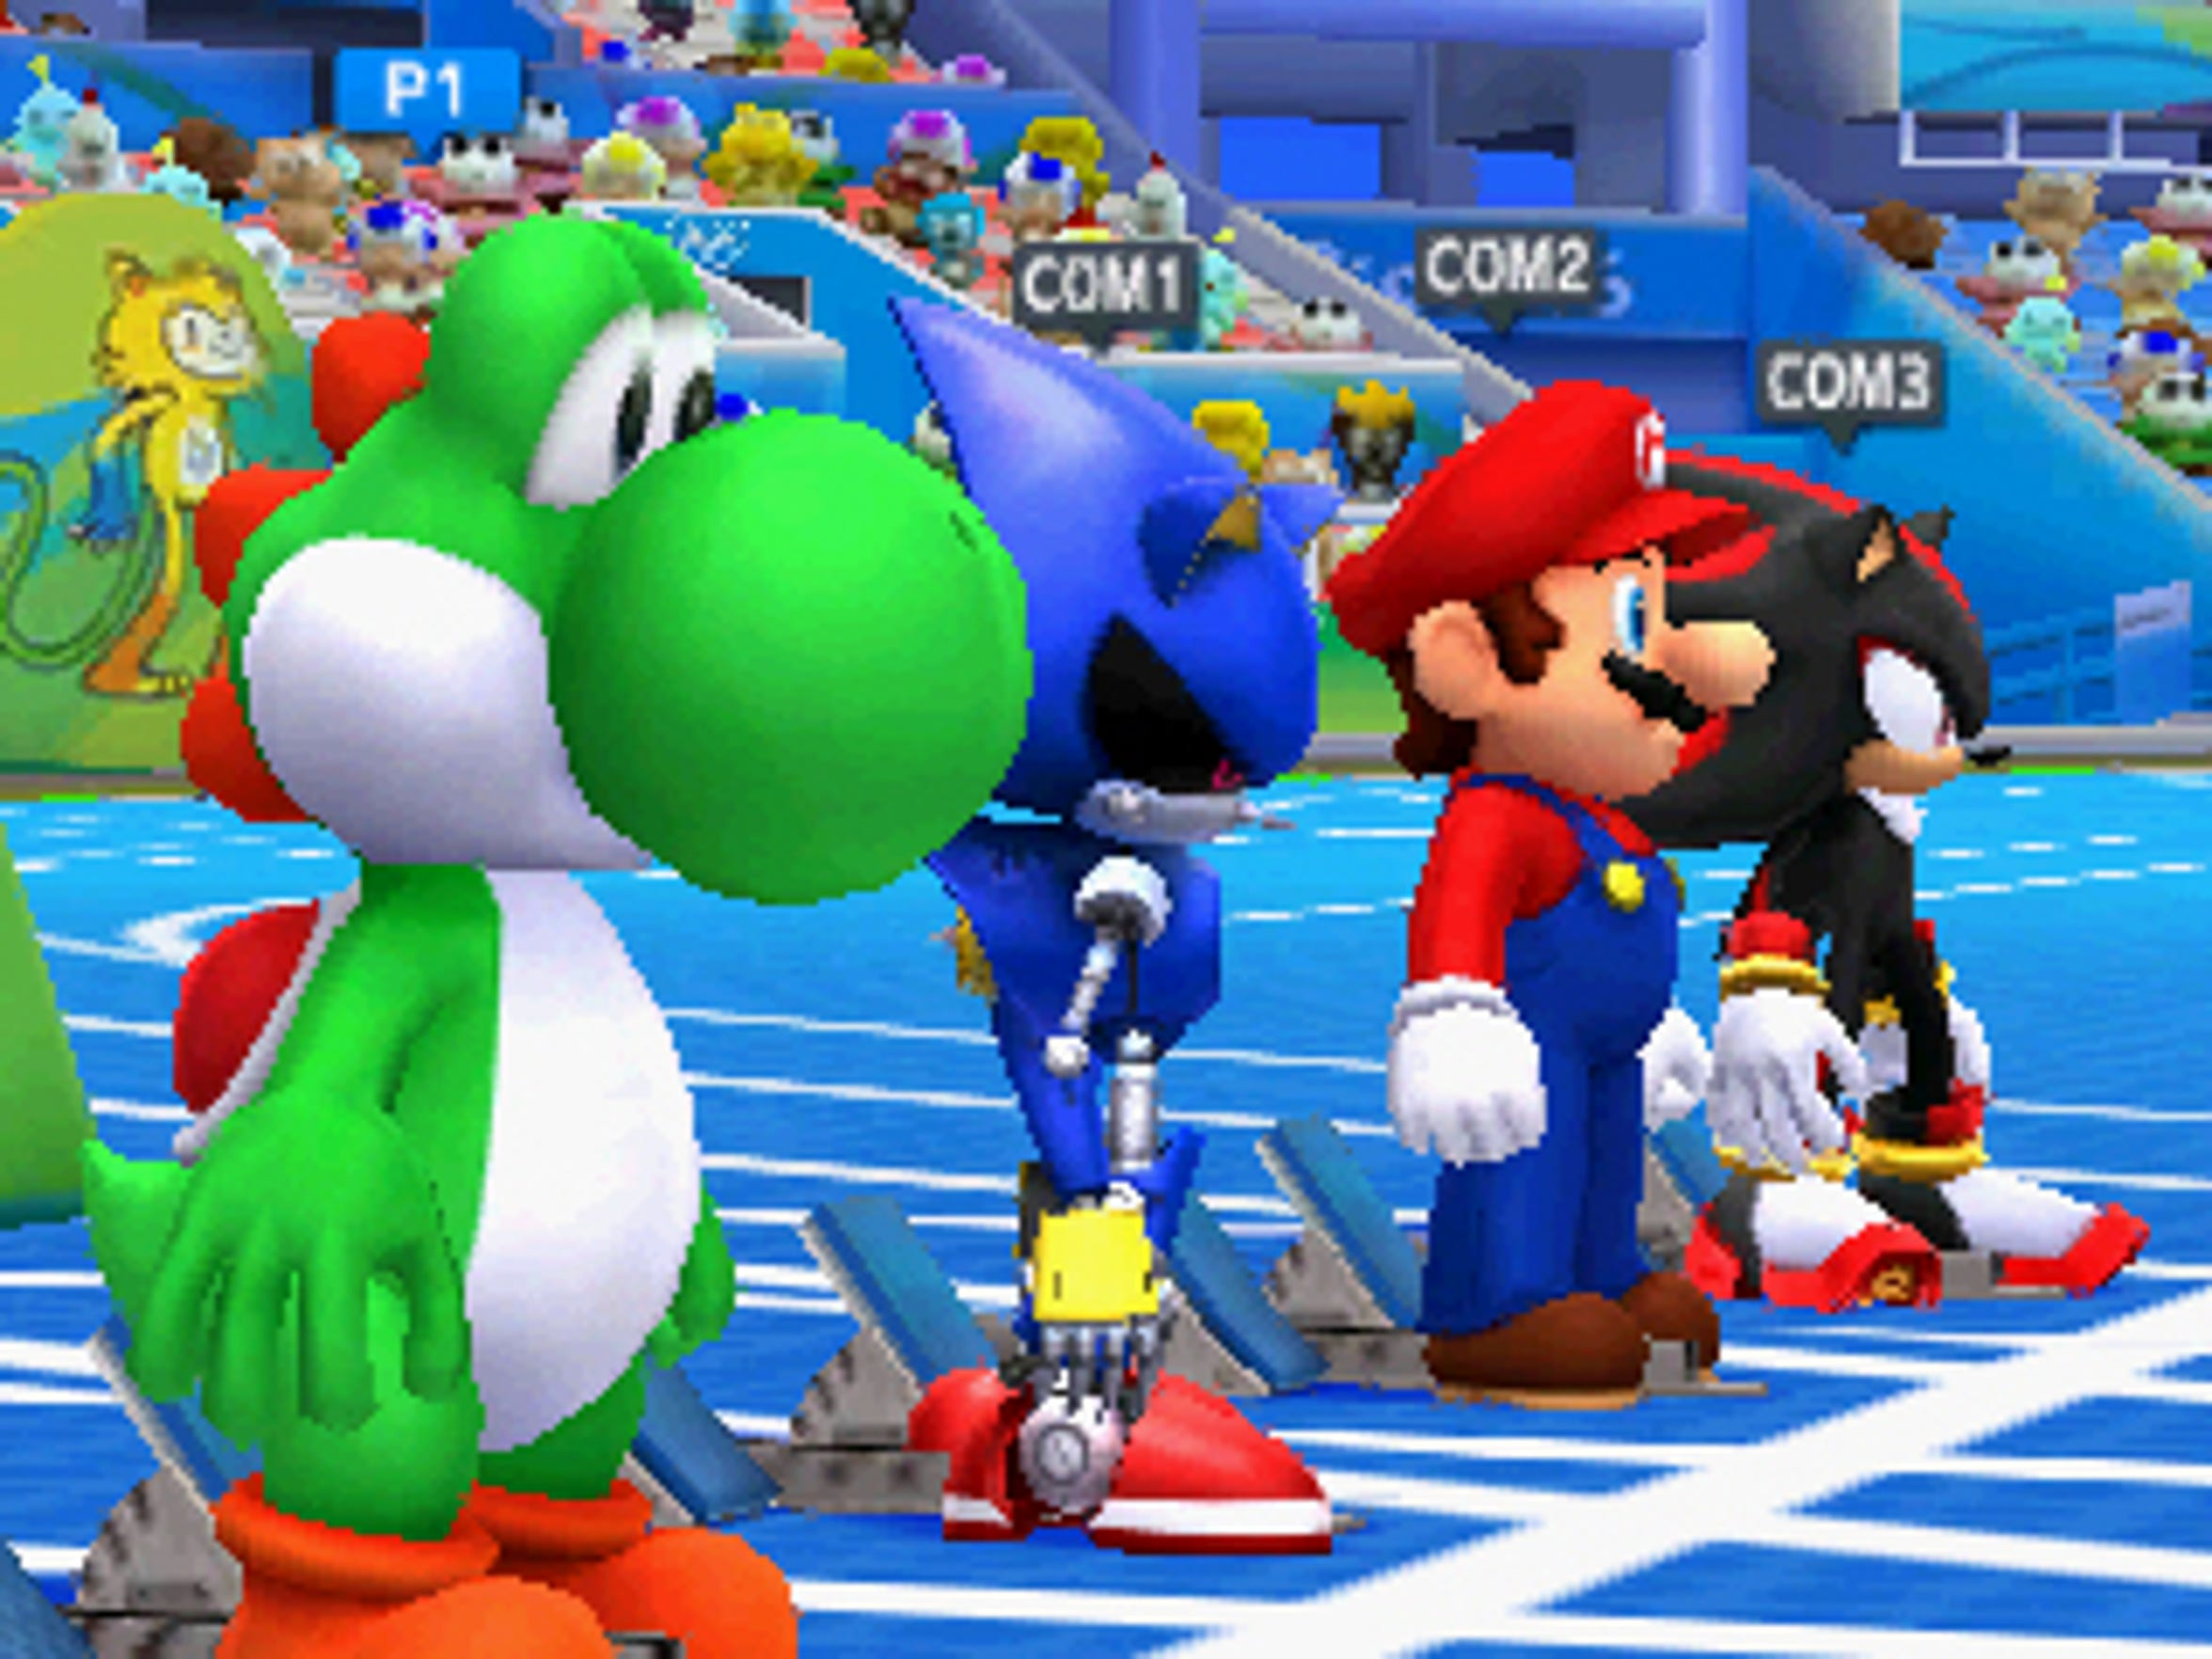 The 100-meter event at Mario & Sonic at the Rio 2016